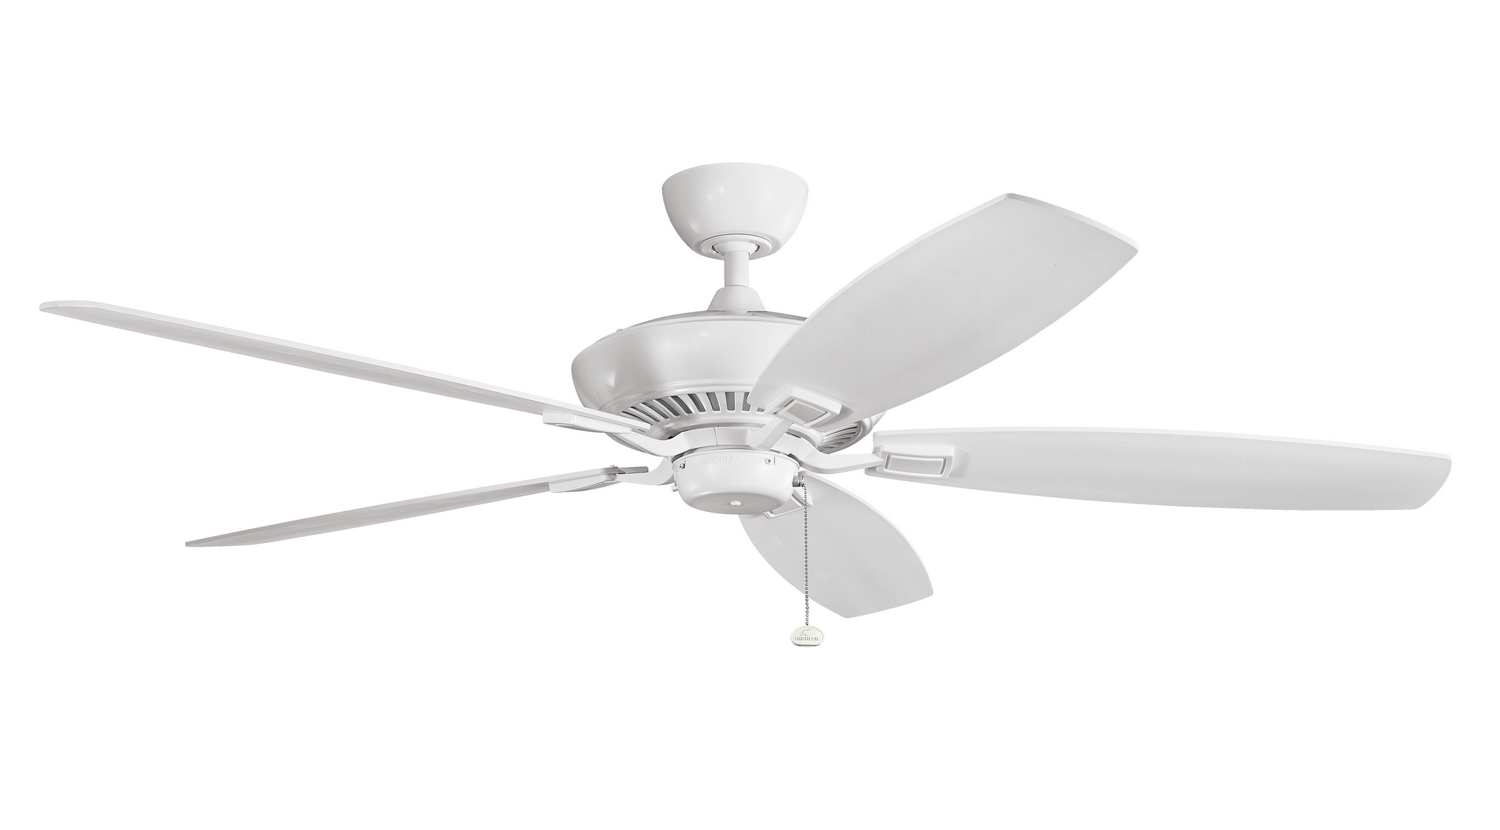 60 inchCeiling Fan from the Canfield collection by Kichler 300188WH